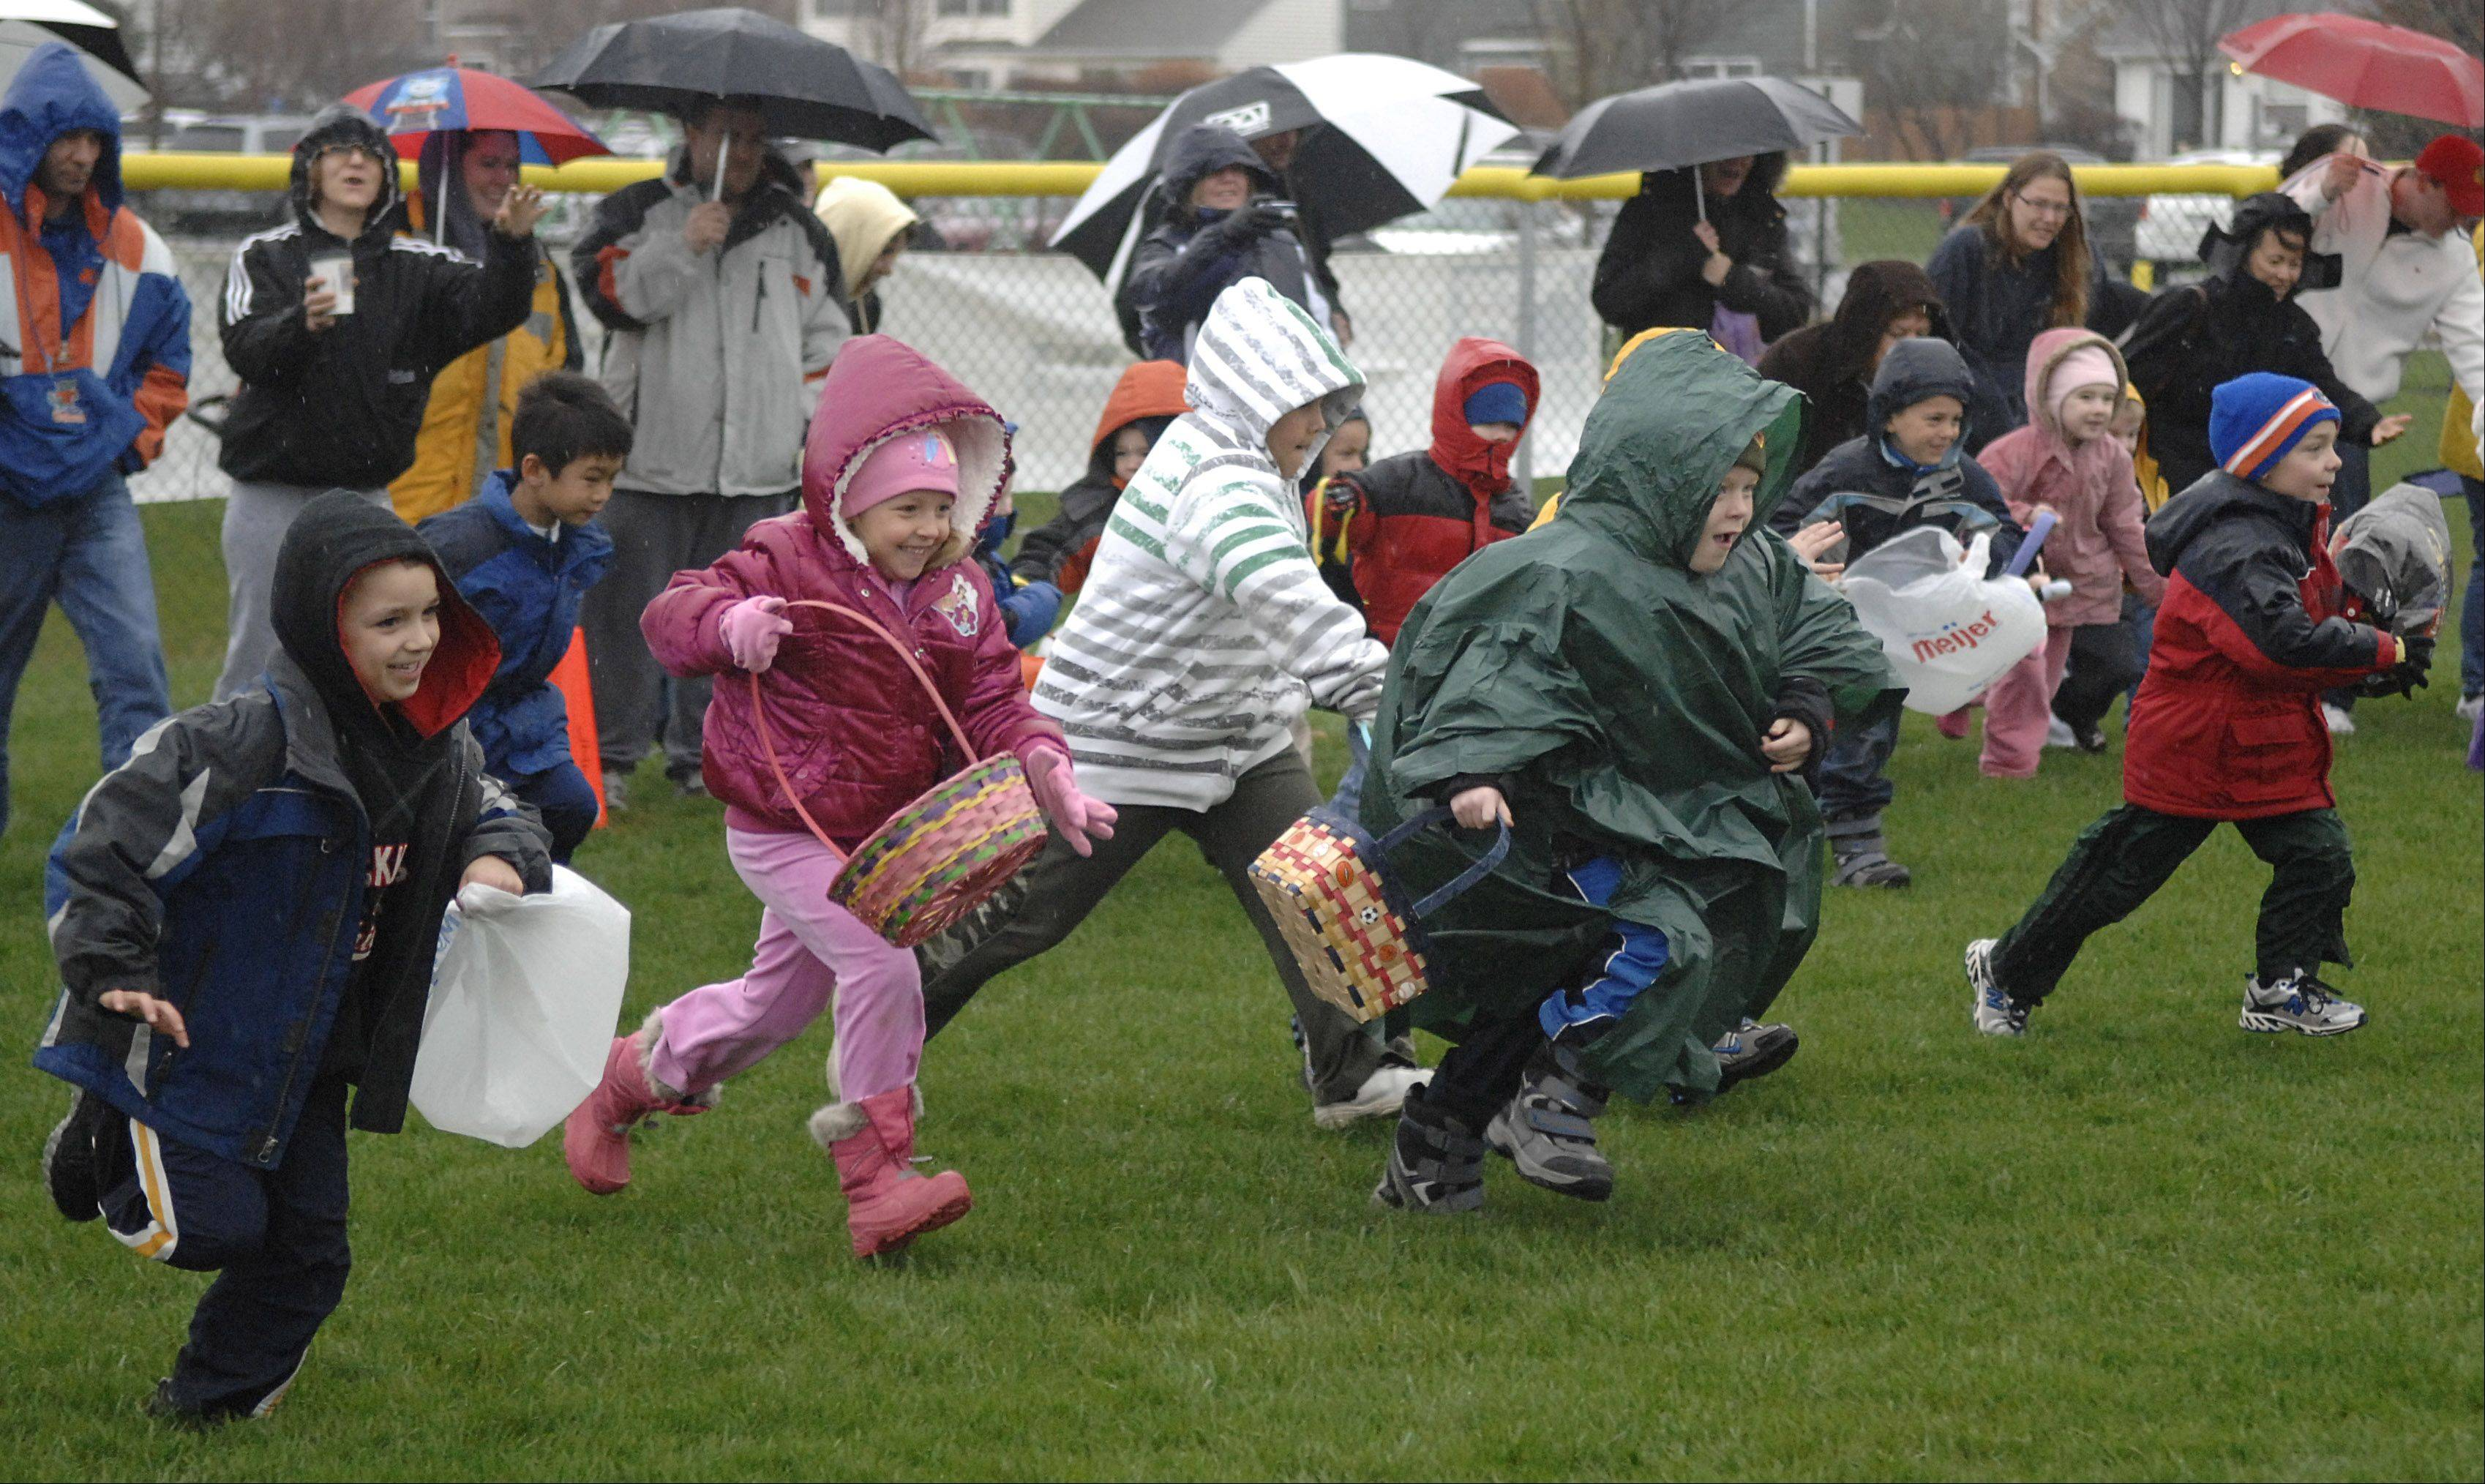 Children take off at 8 a.m. sharp to collect eggs and goodies at last year's Lake in the Hills Easter egg hunt.